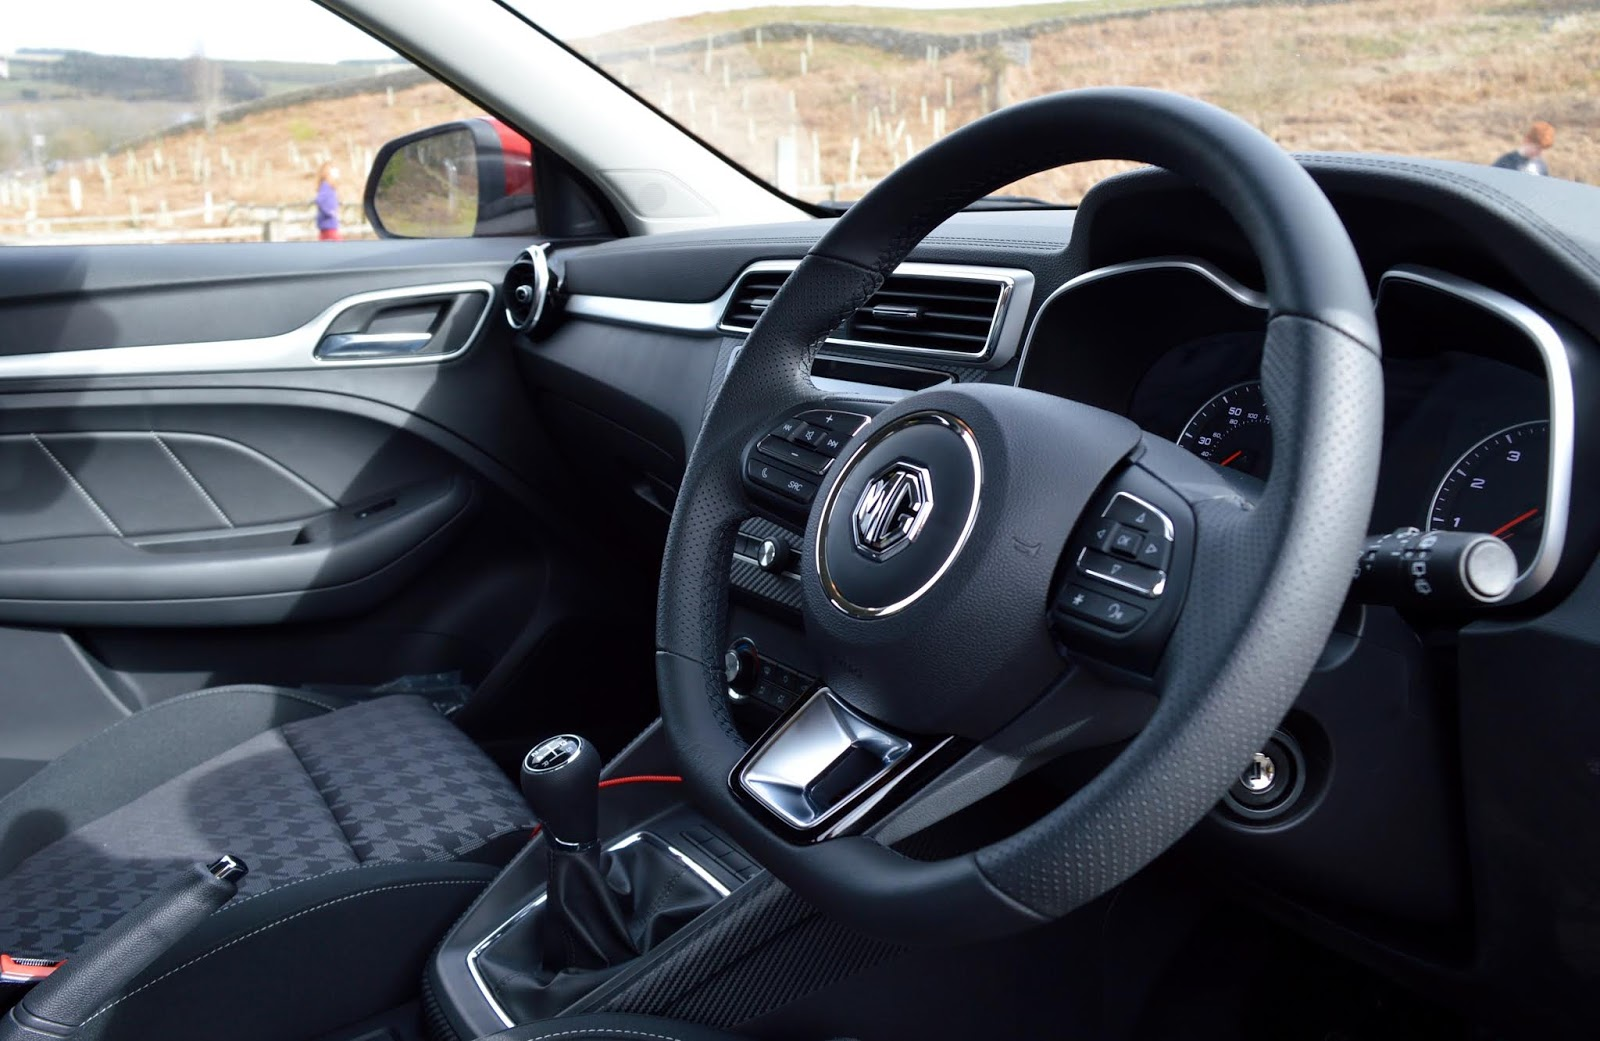 MG ZS 1.5 Excite Review | A New Compact SUV for less than £13,000 - front interior photo